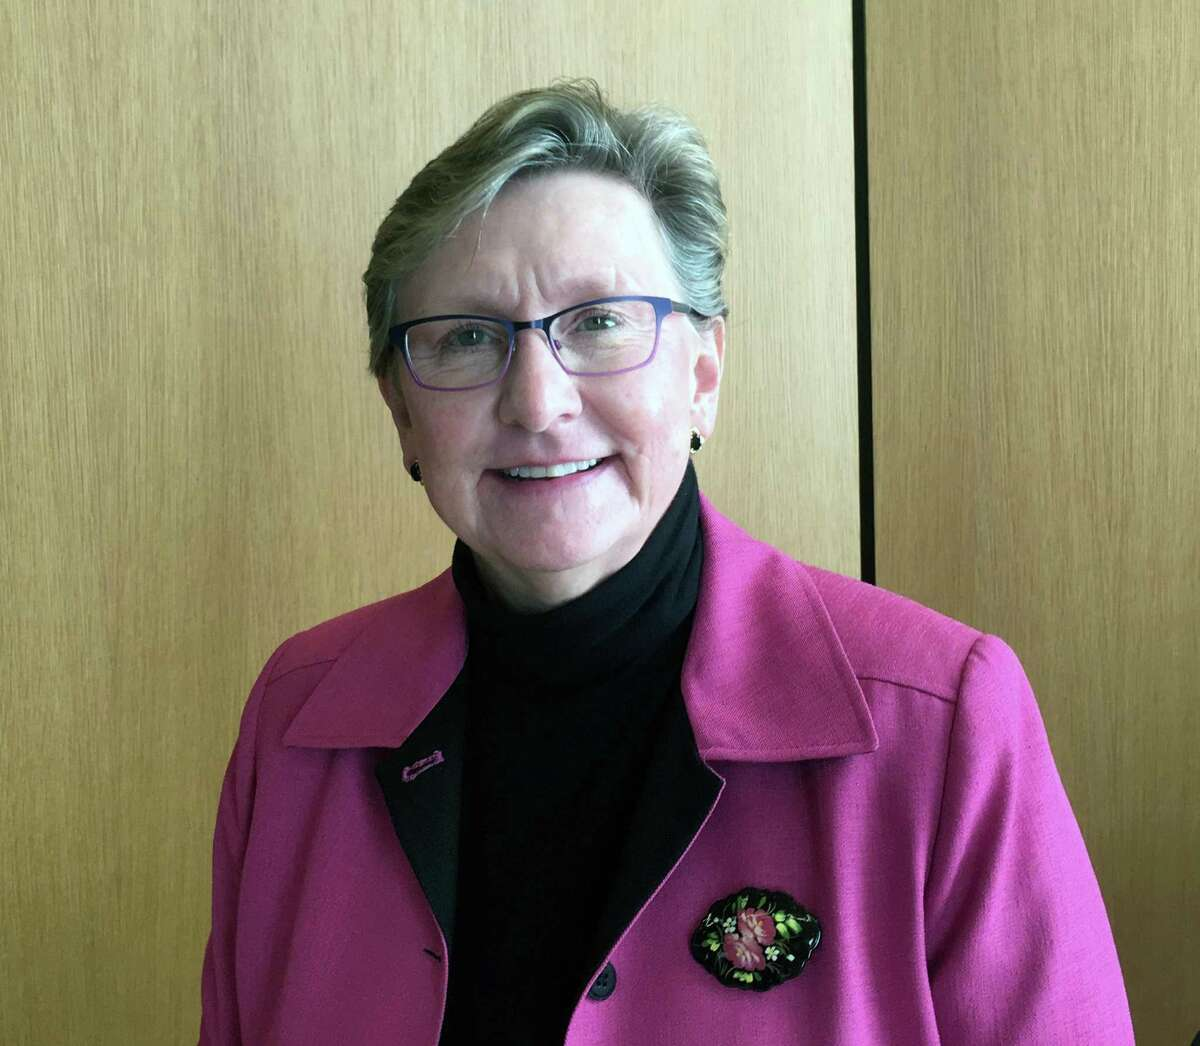 Sandra Dennies was appointed as the town's interim Chief Financial Officer by the Board of Selectmen on Tuesday, May 2, 2017 in New Canaan, Conn.